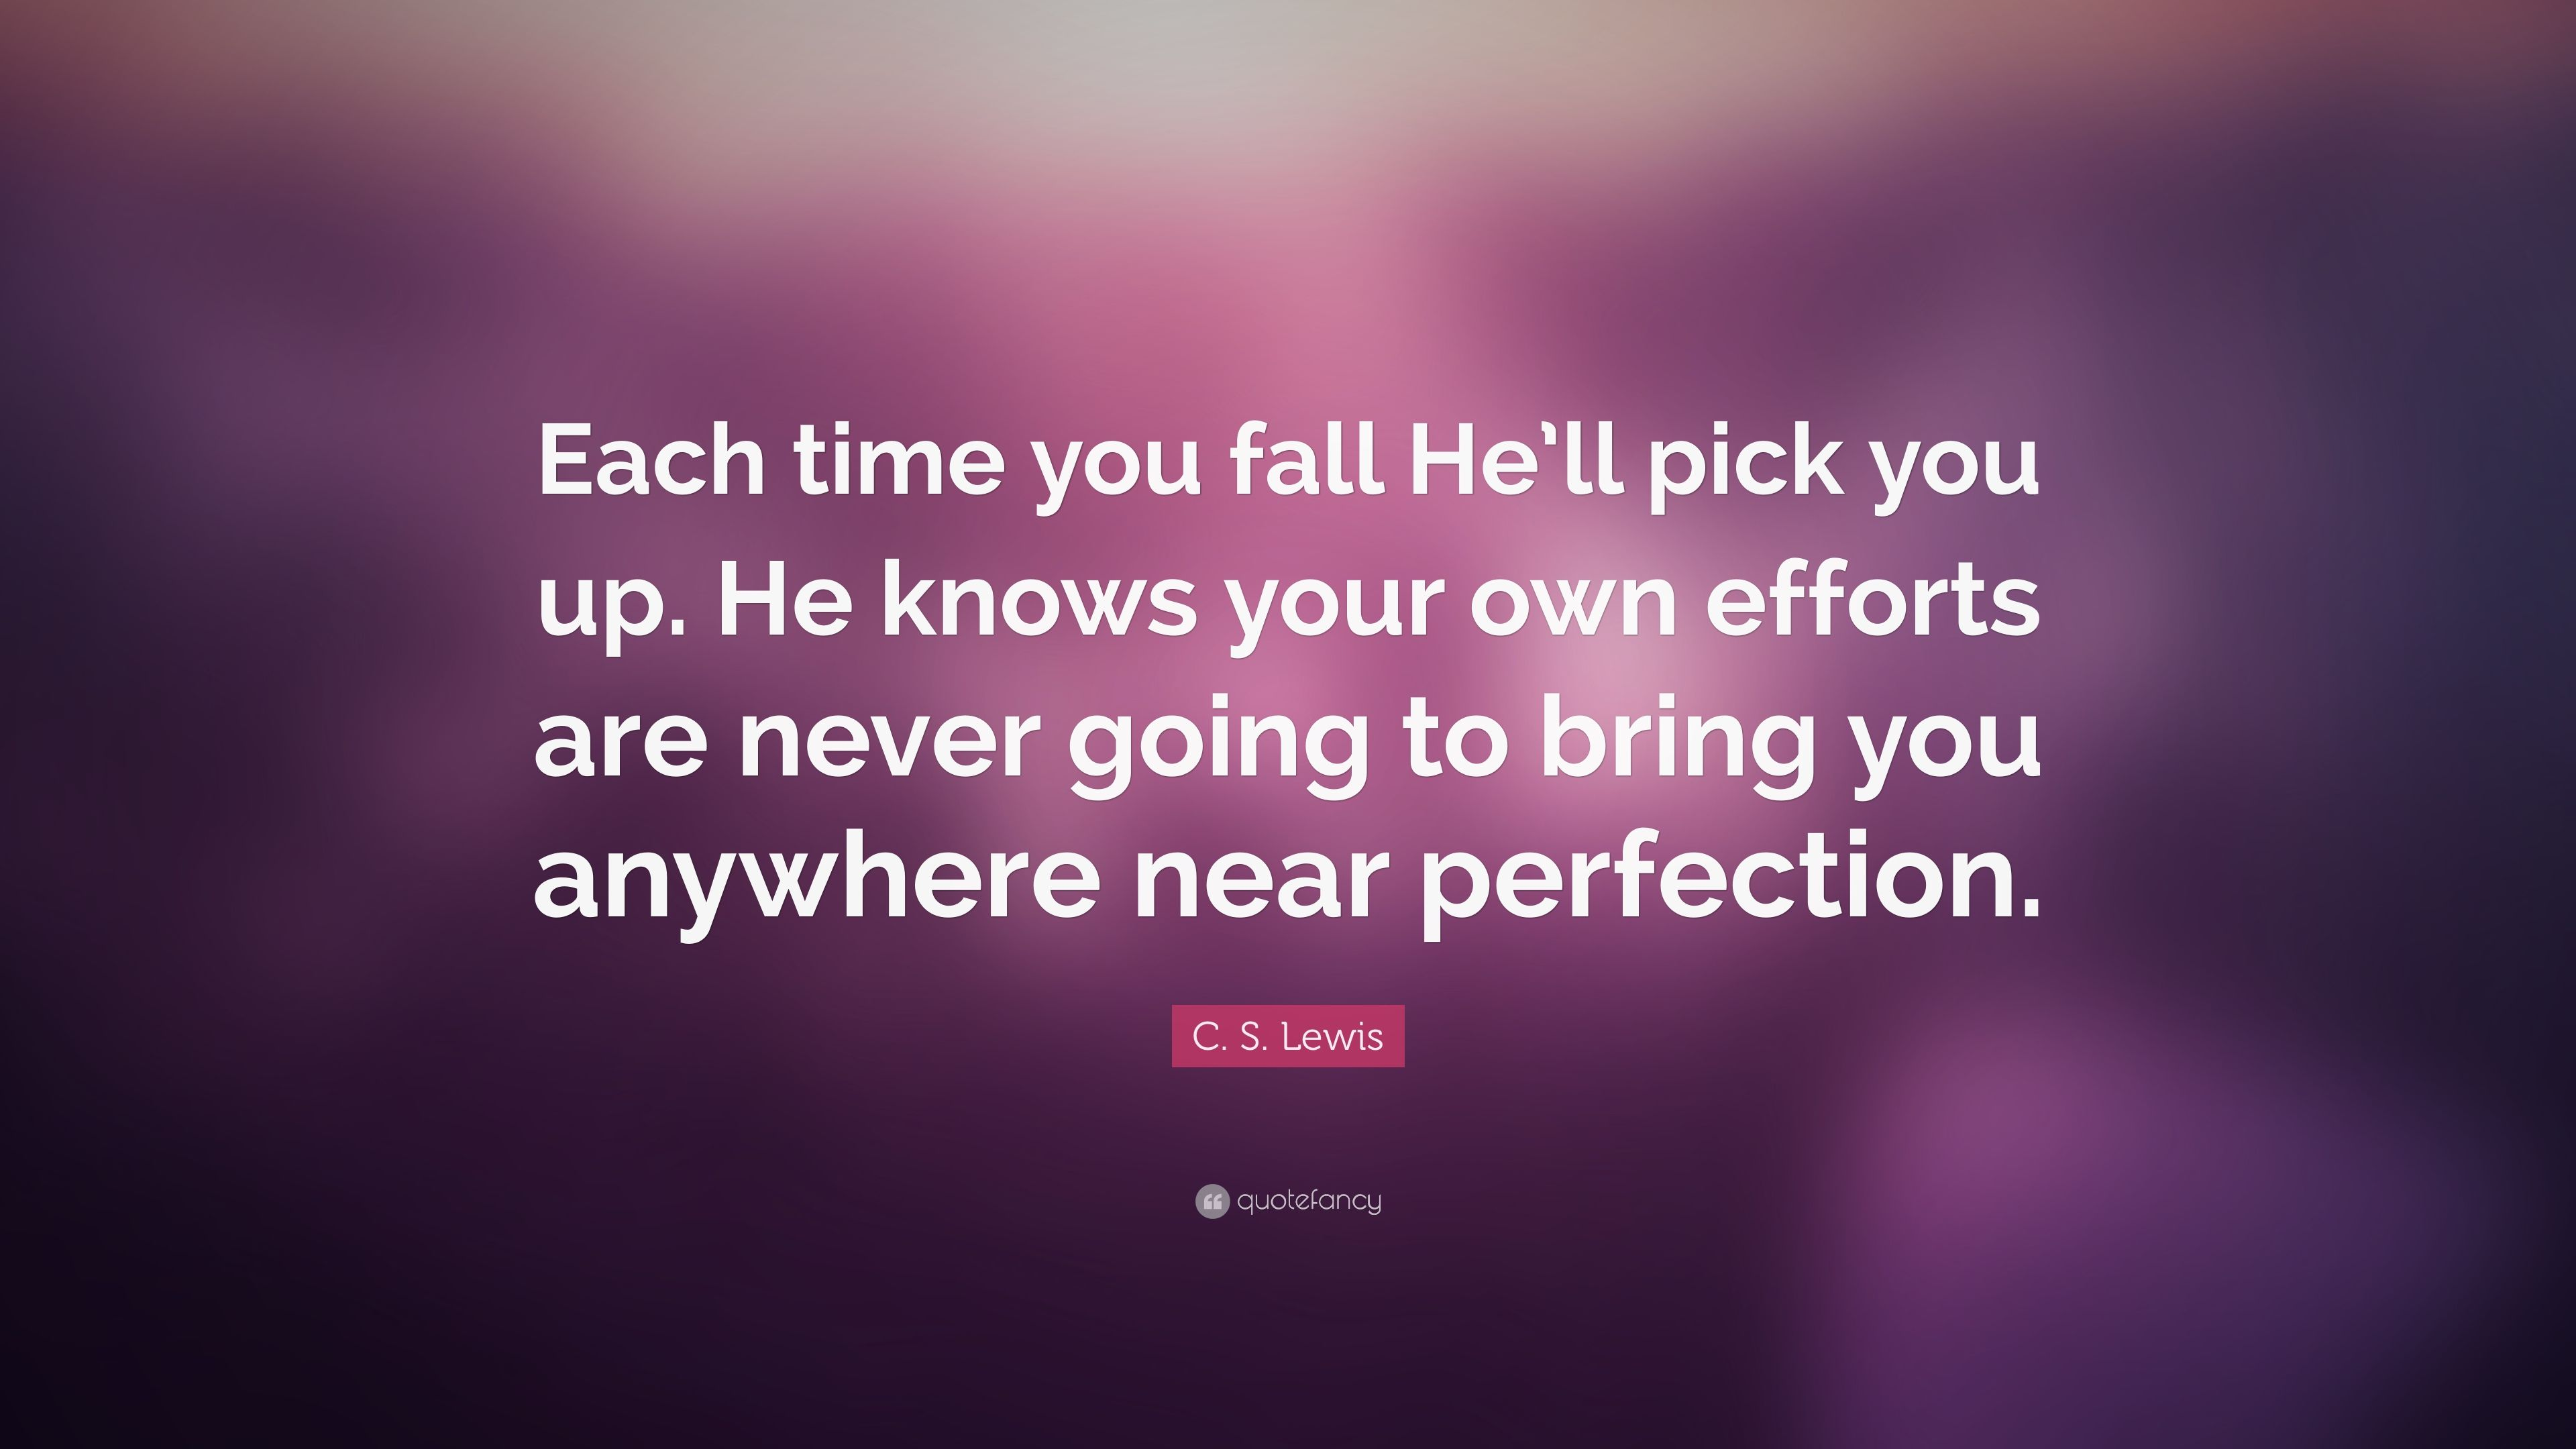 C S Lewis Quote Each Time You Fall Hell Pick You Up He Knows